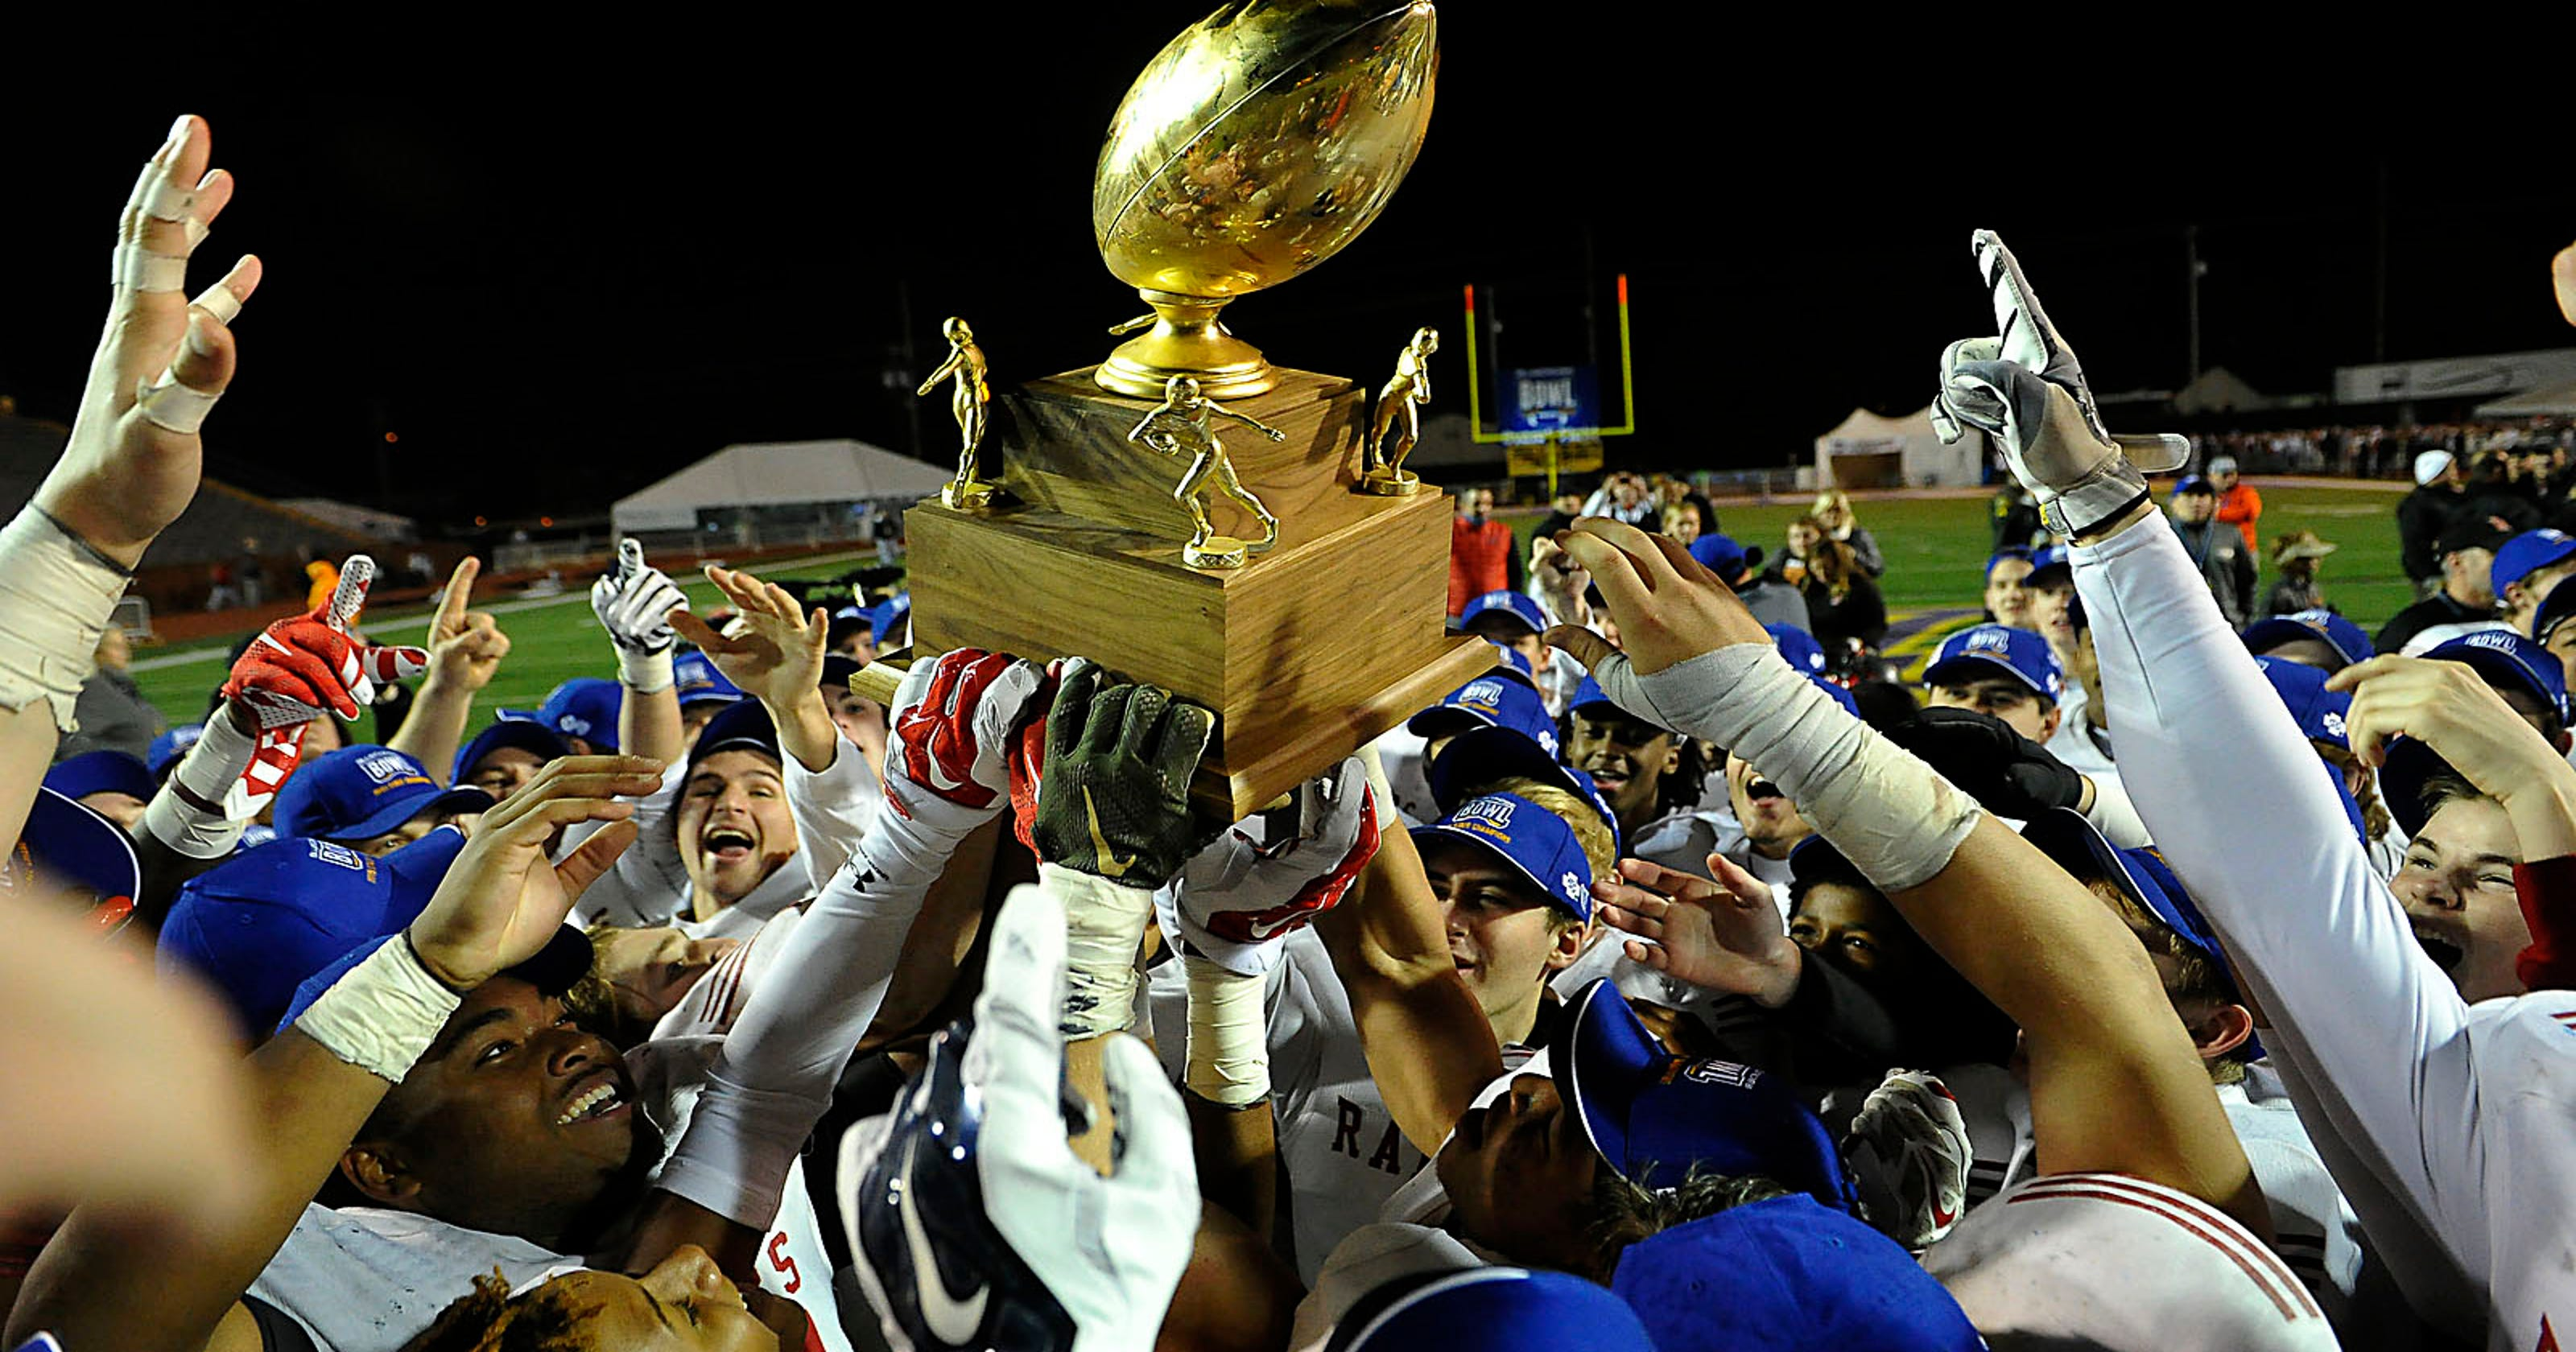 How to watch the TSSAA football state championship games